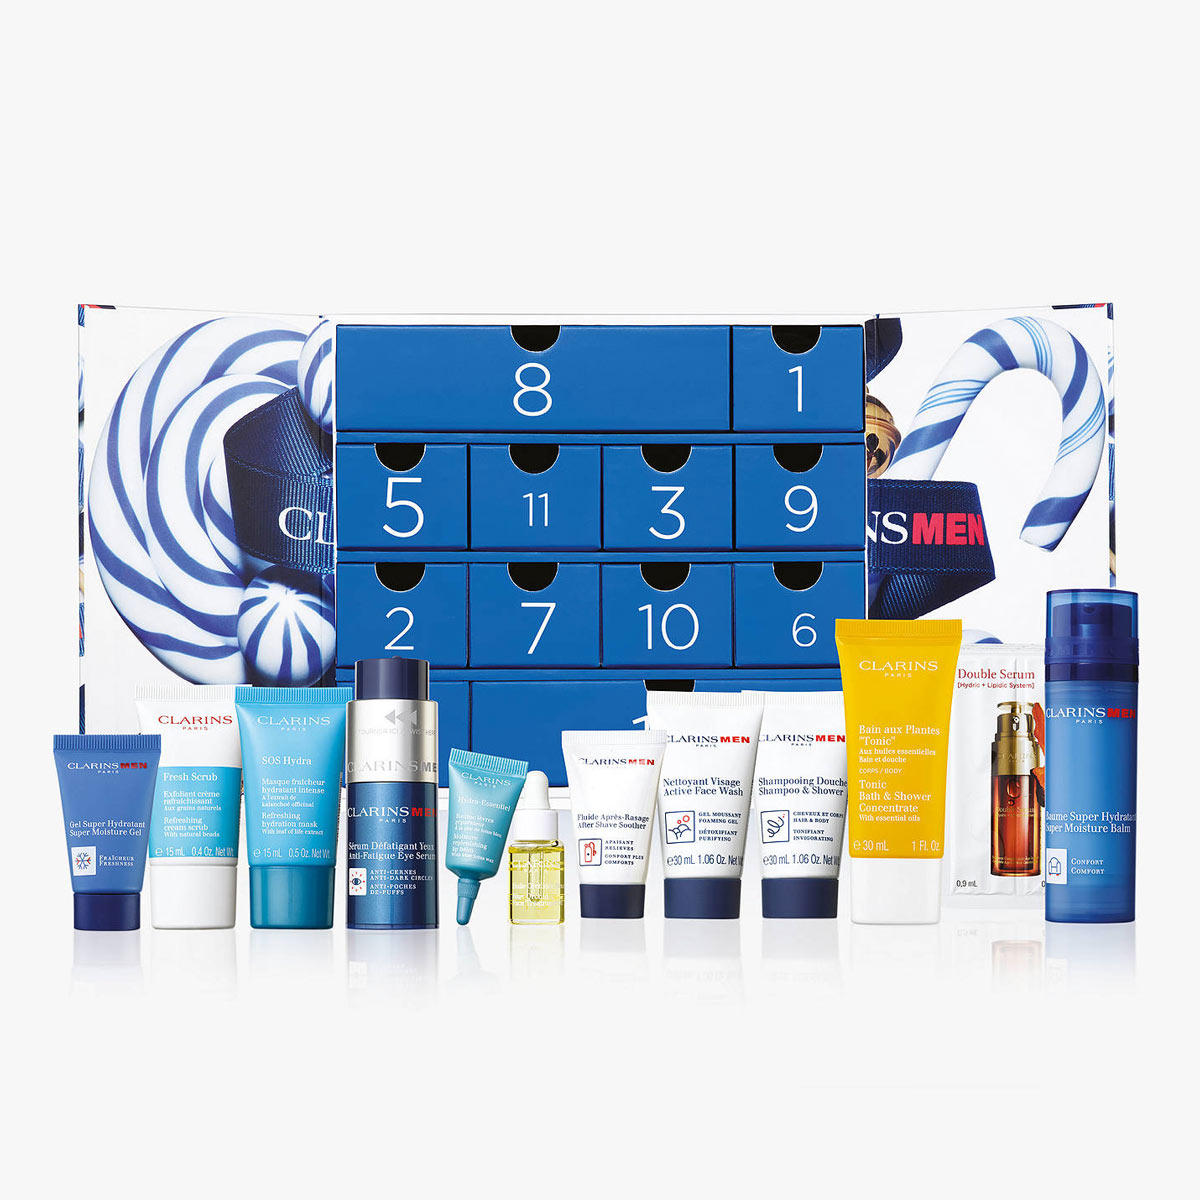 clarins-12-day-advent-calendar-for-men-grooming-product-review-man-for-himself